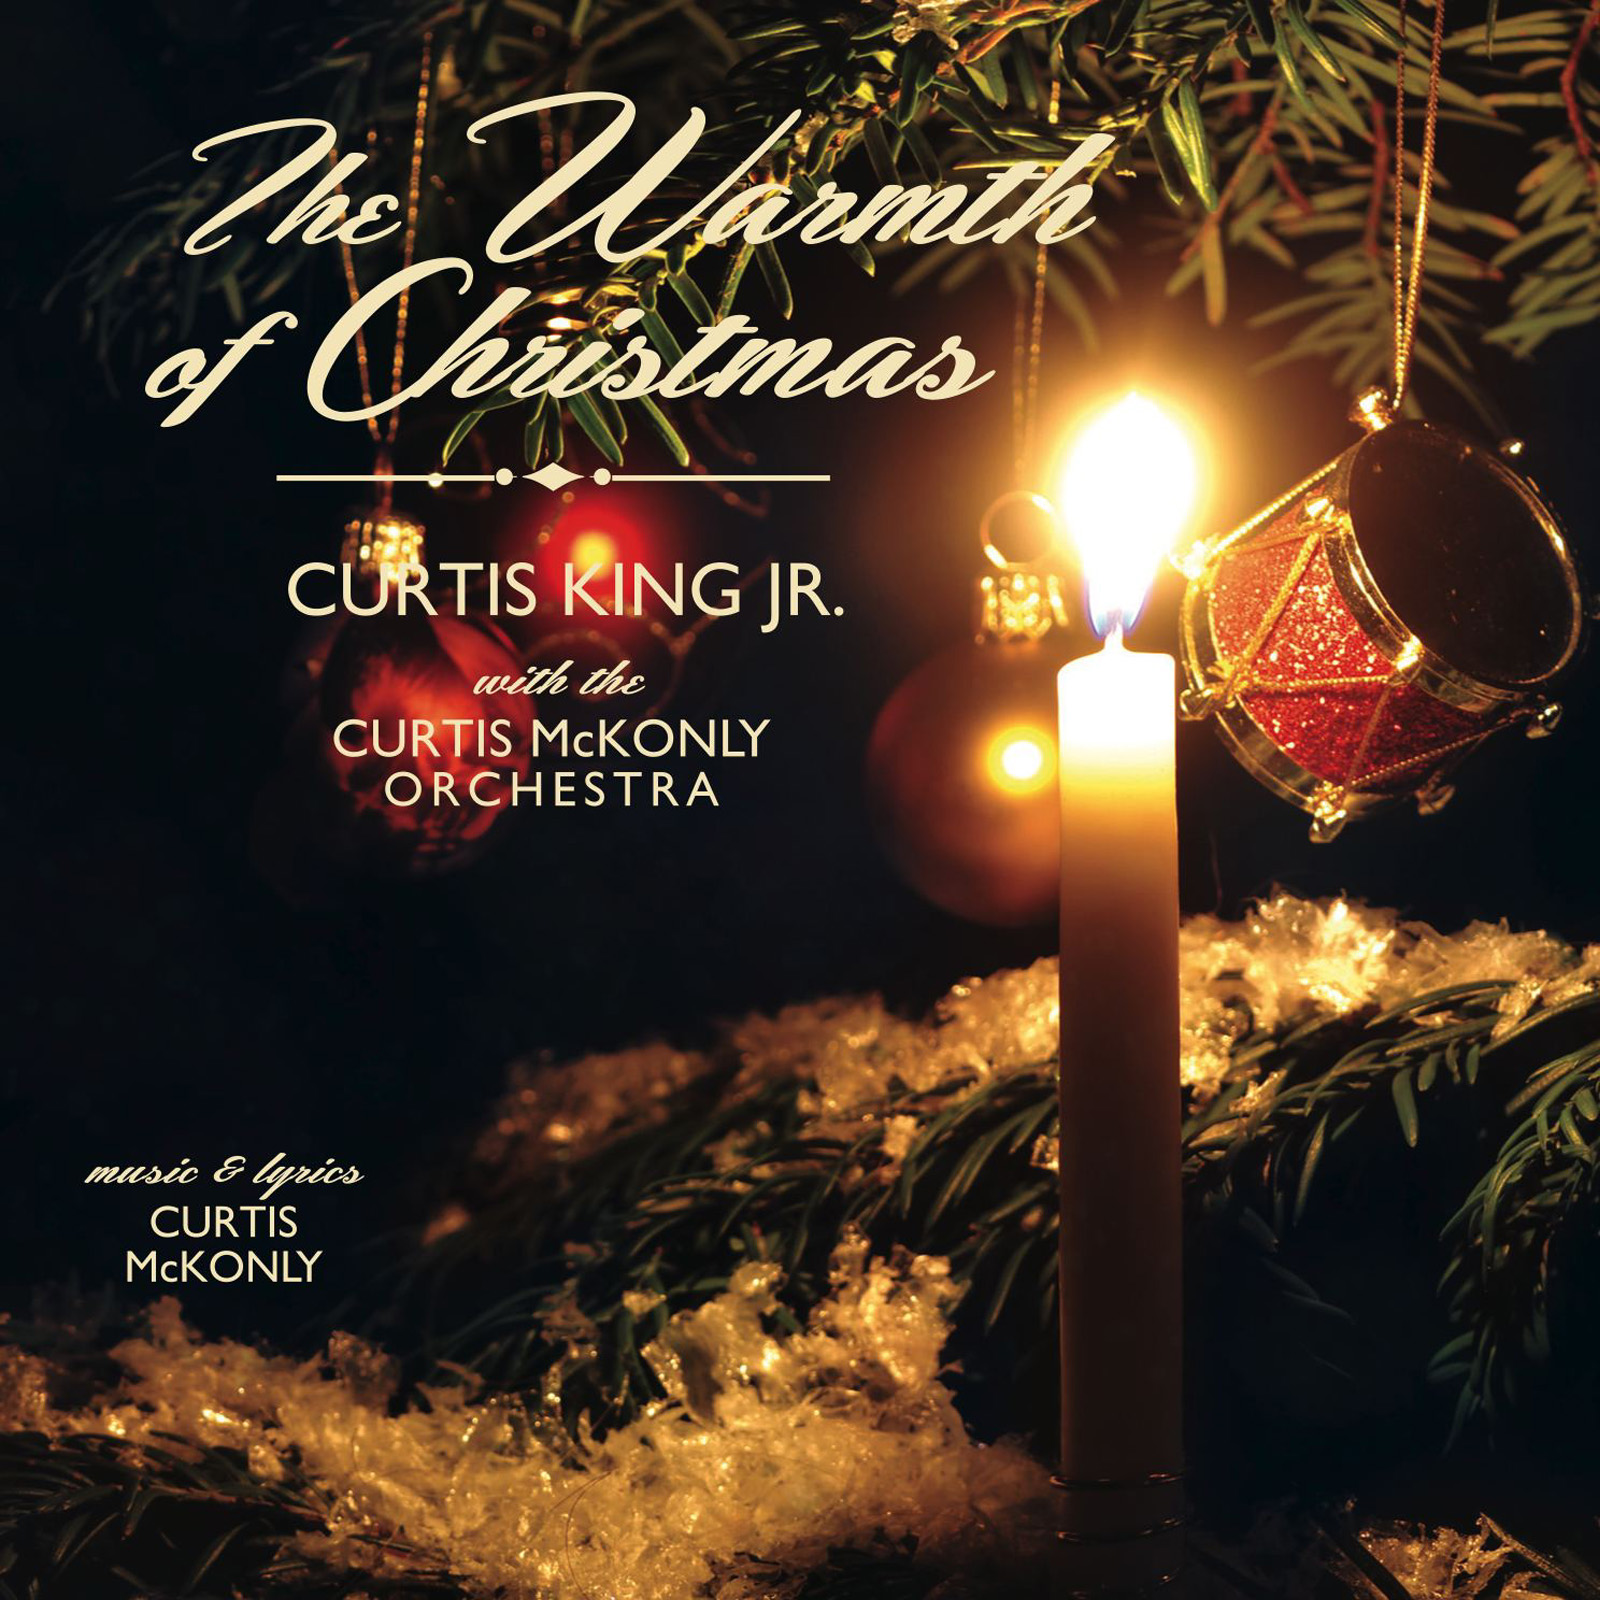 CURTIS KING ALBUM COVER.jpg